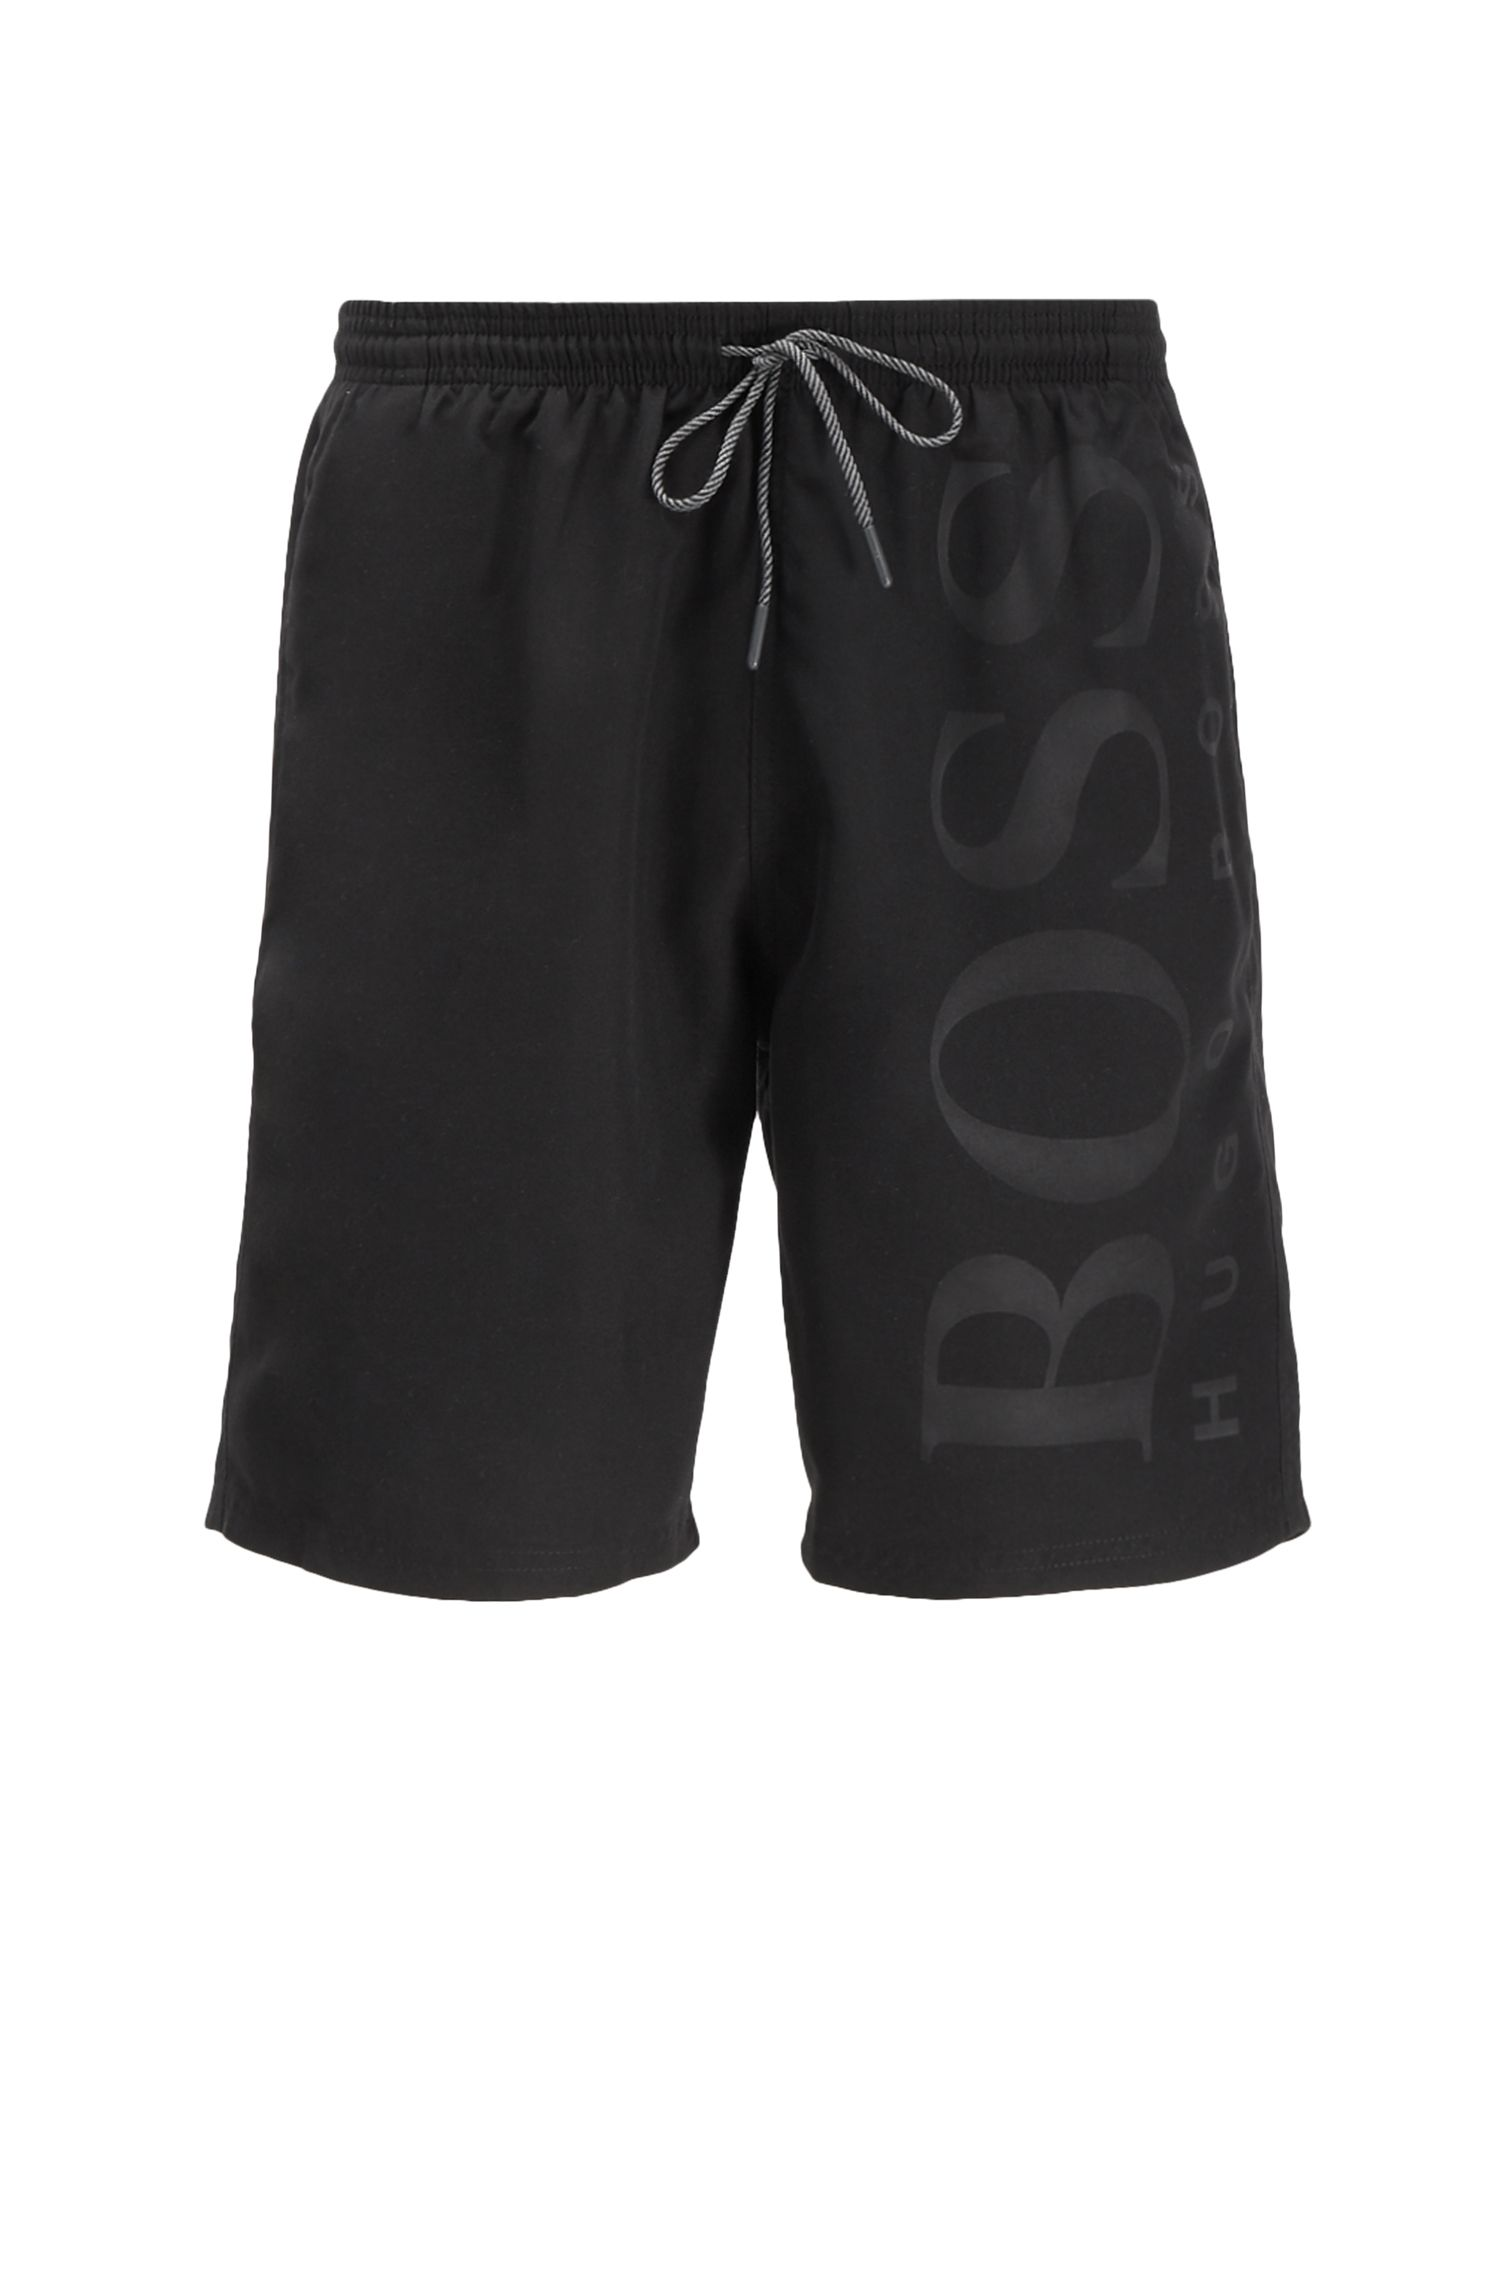 'Orca' | Quick Dry Logo Swim Trunks, Black